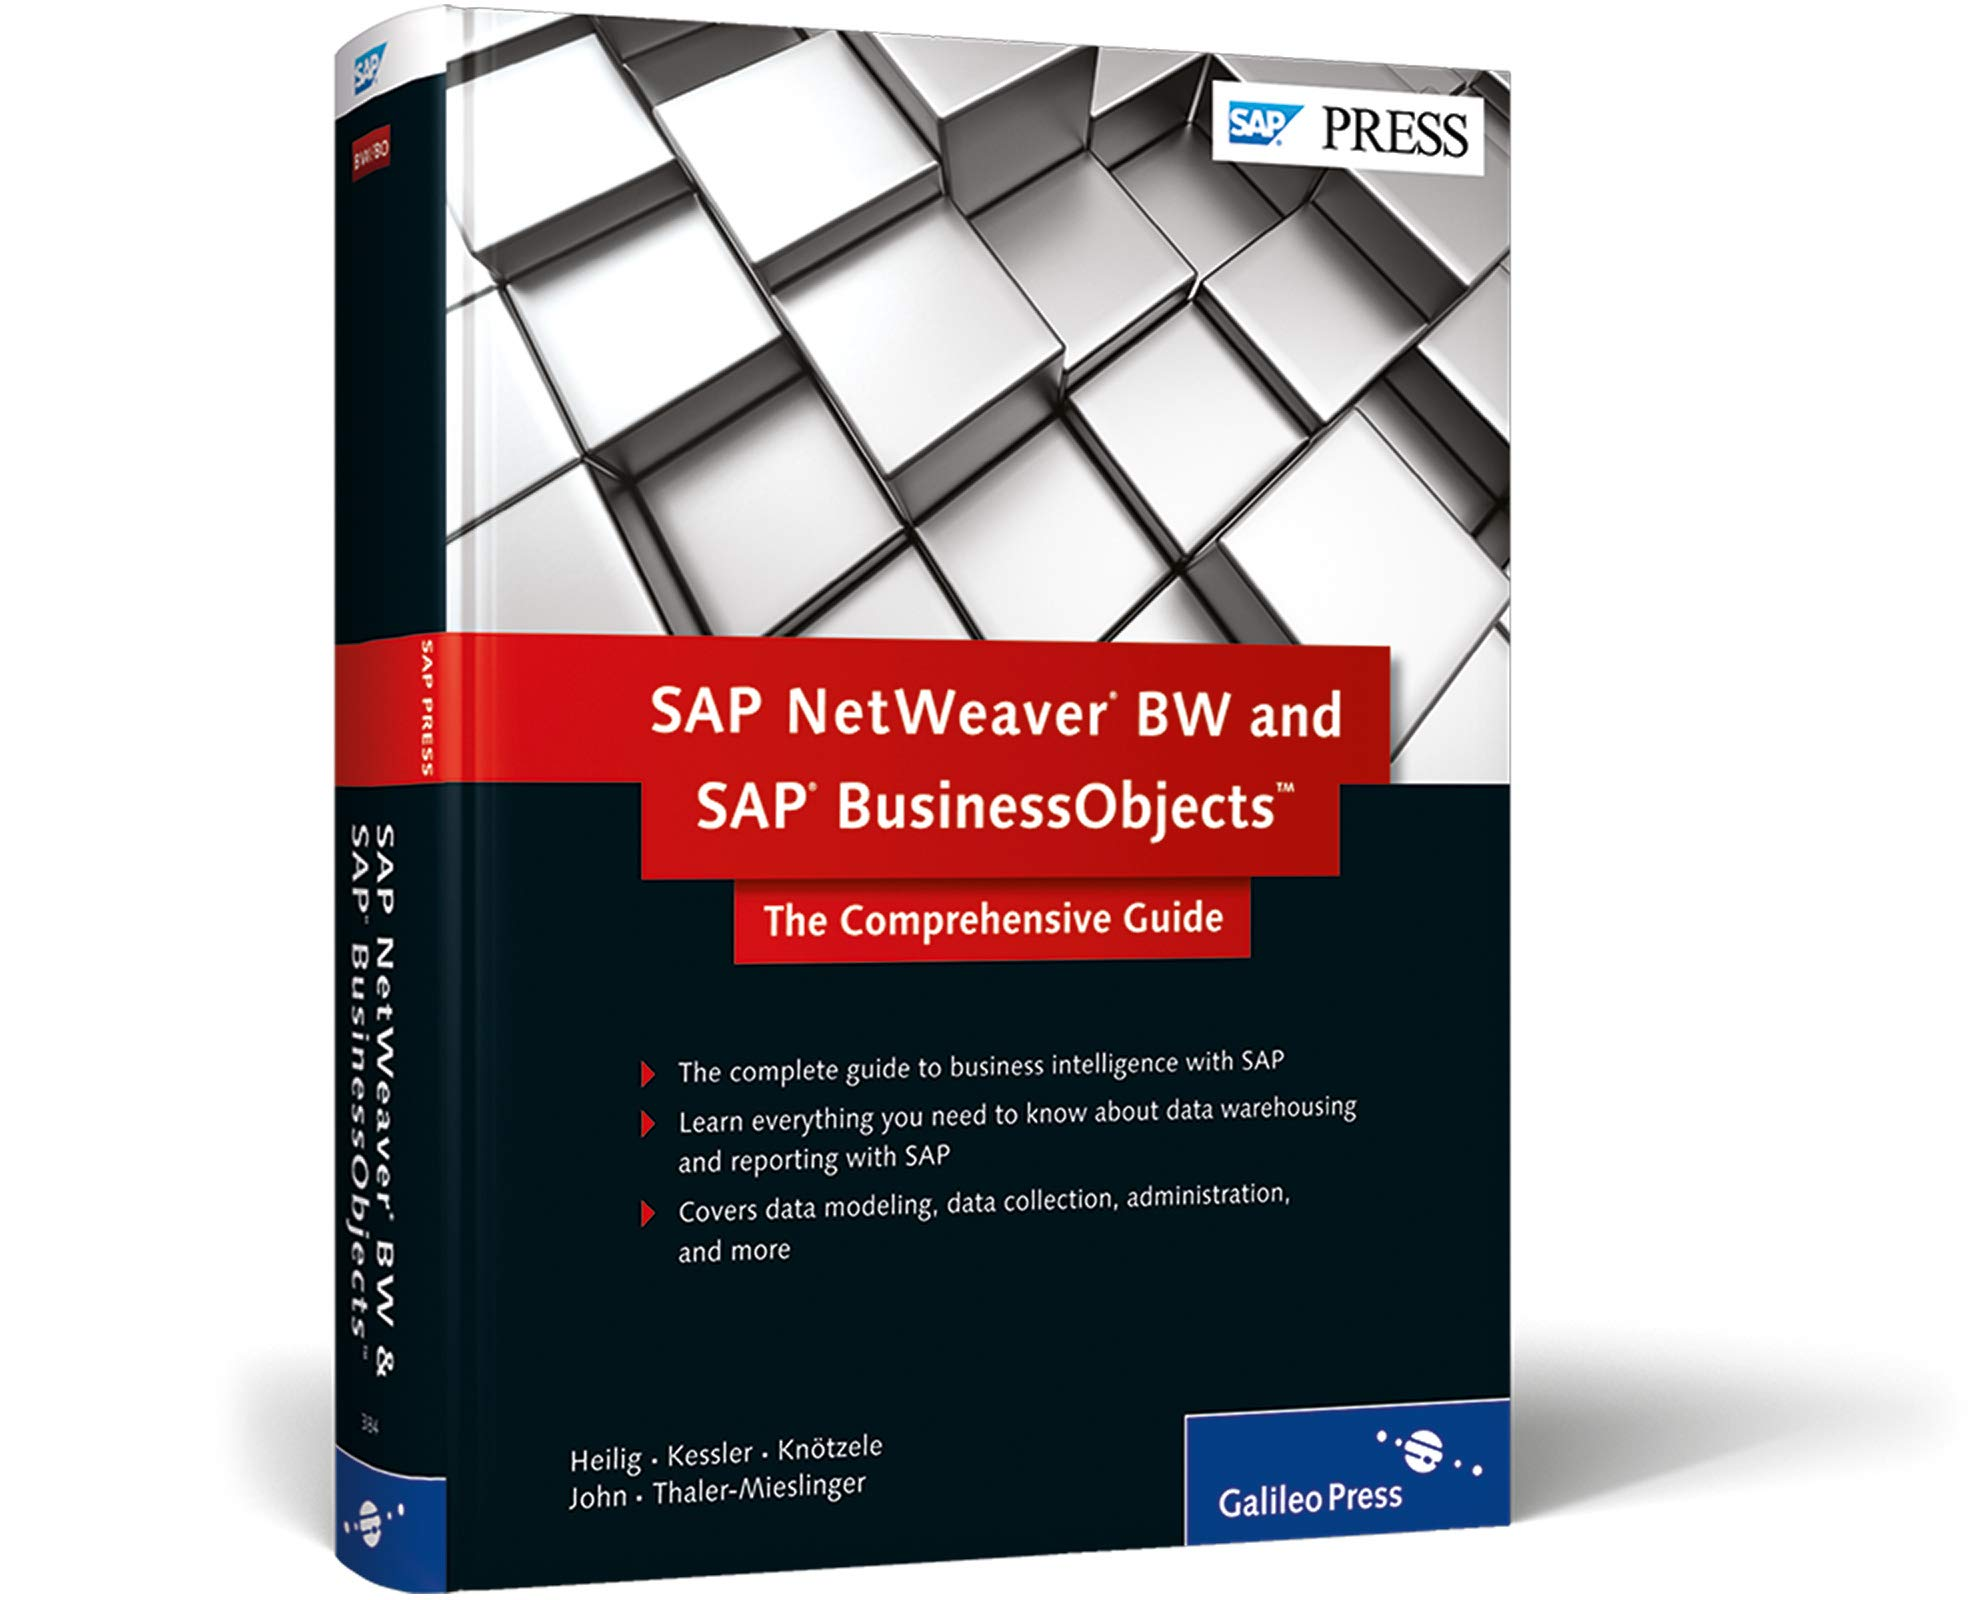 Amazon.com: SAP NetWeaver BW and SAP BusinessObjects: The Comprehensive  Guide (9781592293841): Loren Heilig, Torsten Kessler, Thilo Knötzele, Peter  John, ...